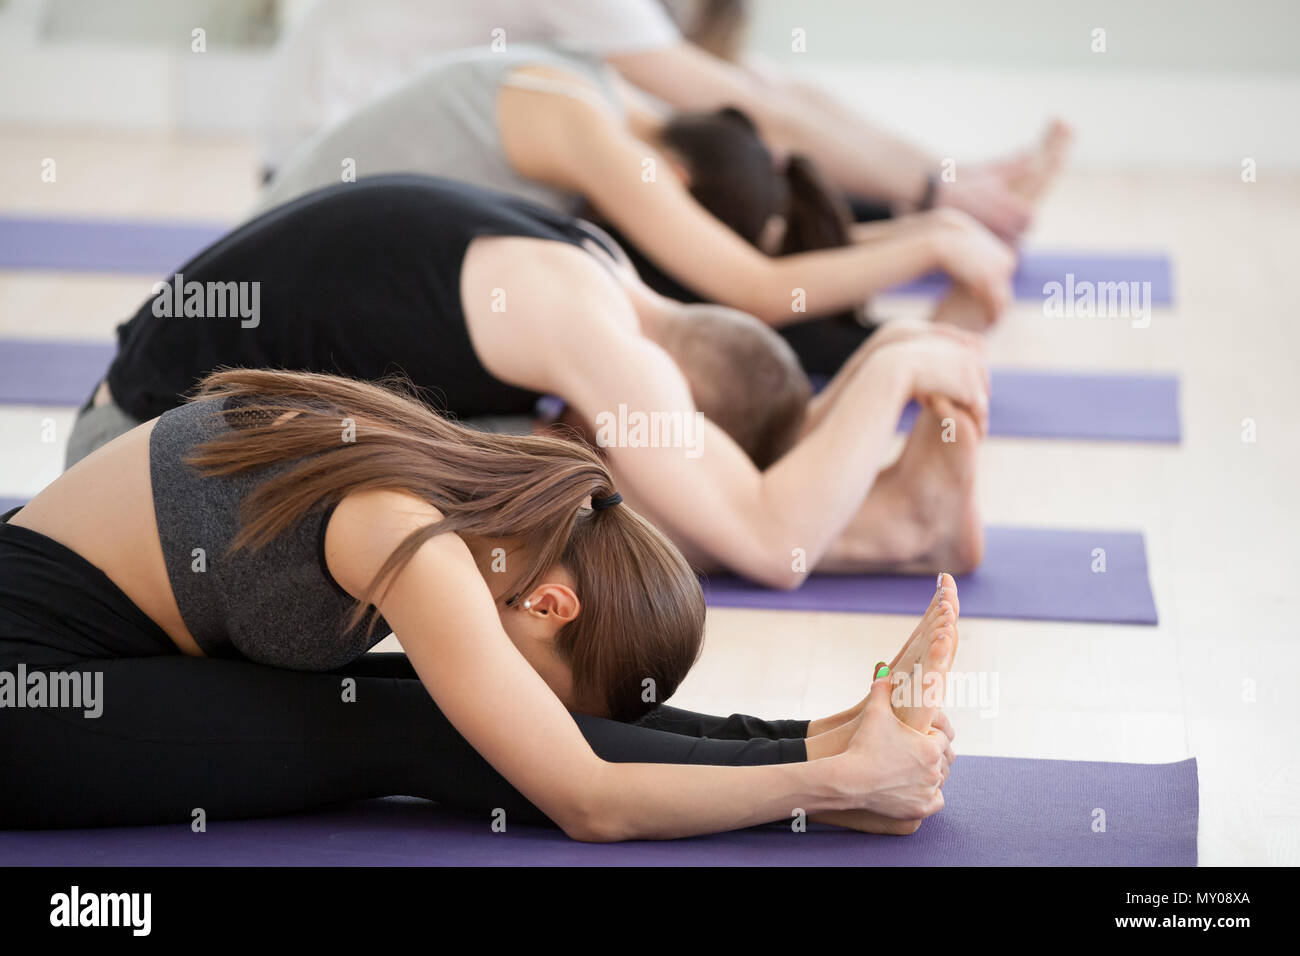 Group of young sporty people practicing yoga lesson, doing Seated forward bend exercise, paschimottanasana pose, indoor close up, yogi students workin Stock Photo